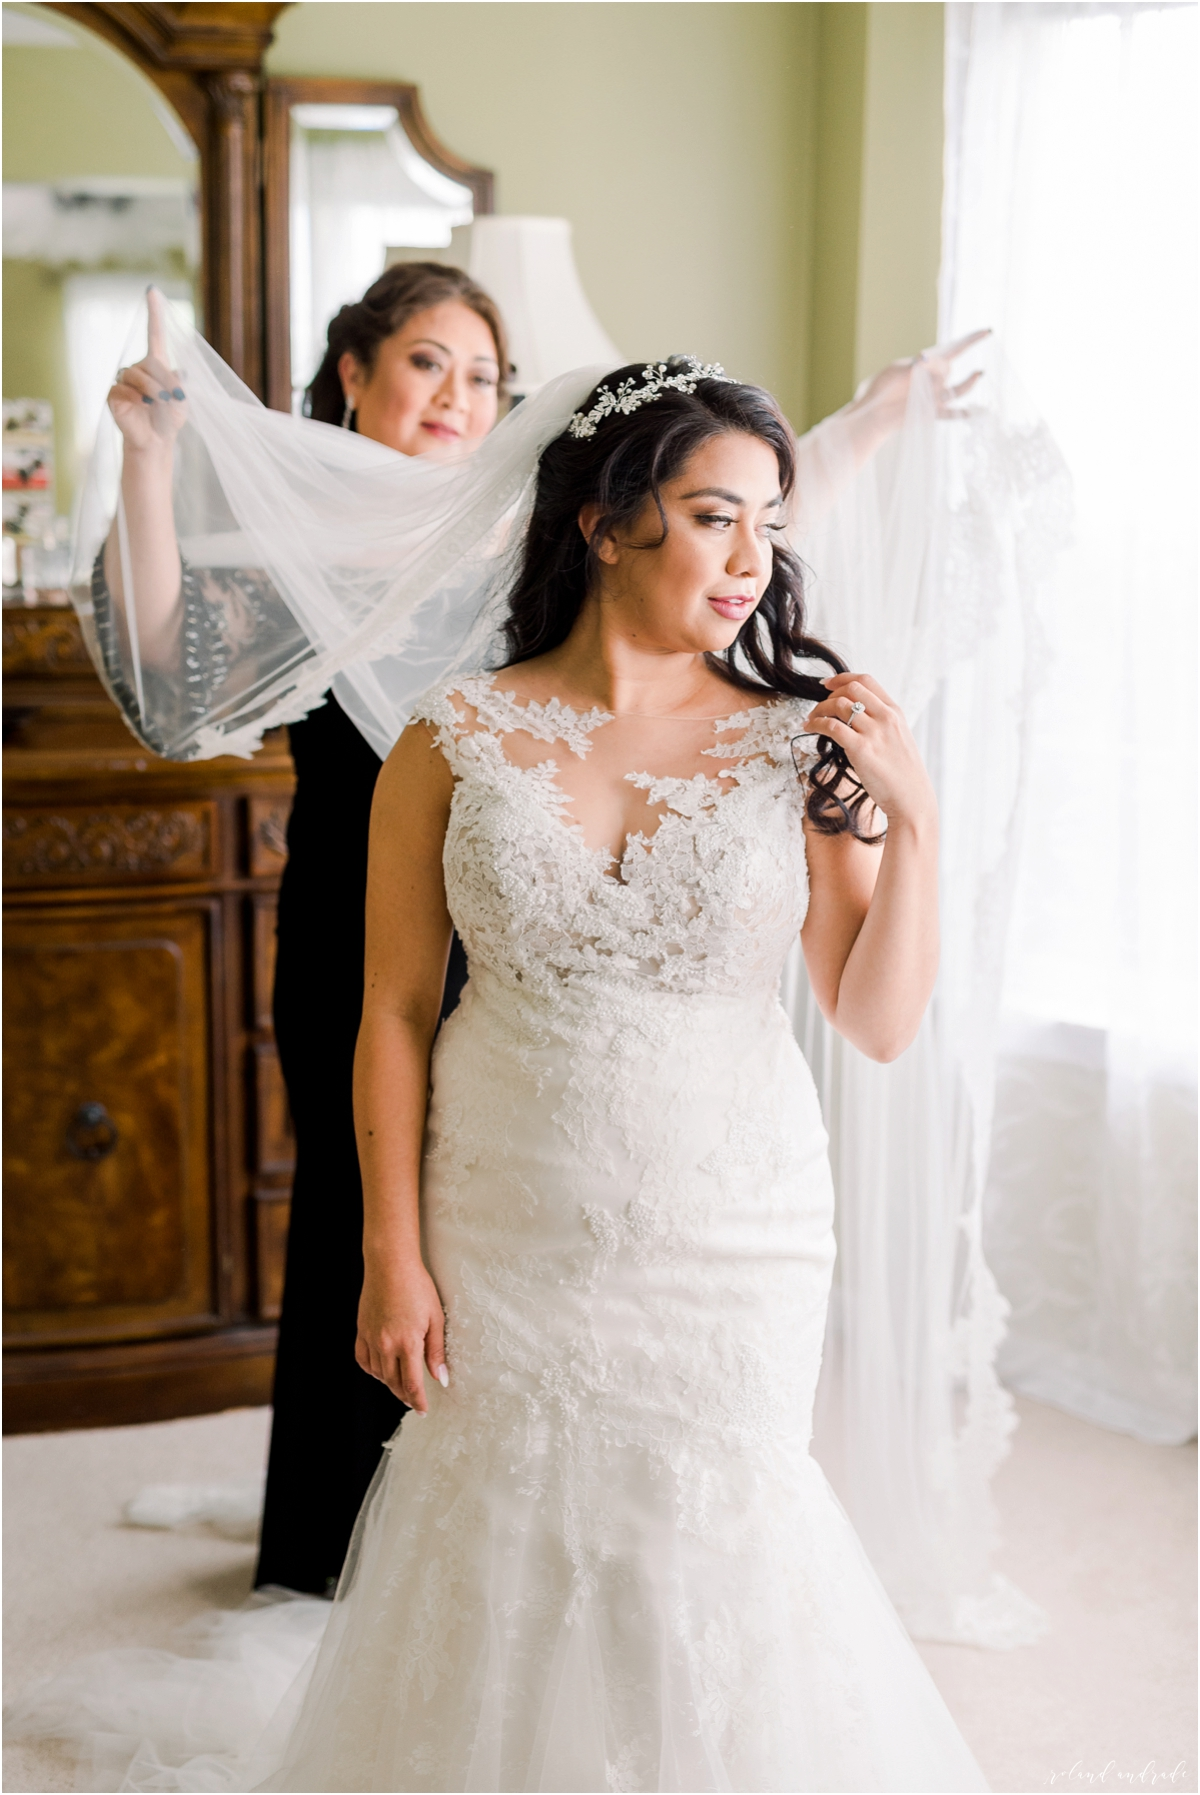 Chicago Wedding Photography, Orchidia Real Wedding, Rosemont Wedding, Best Chicago Photographer21.jpg